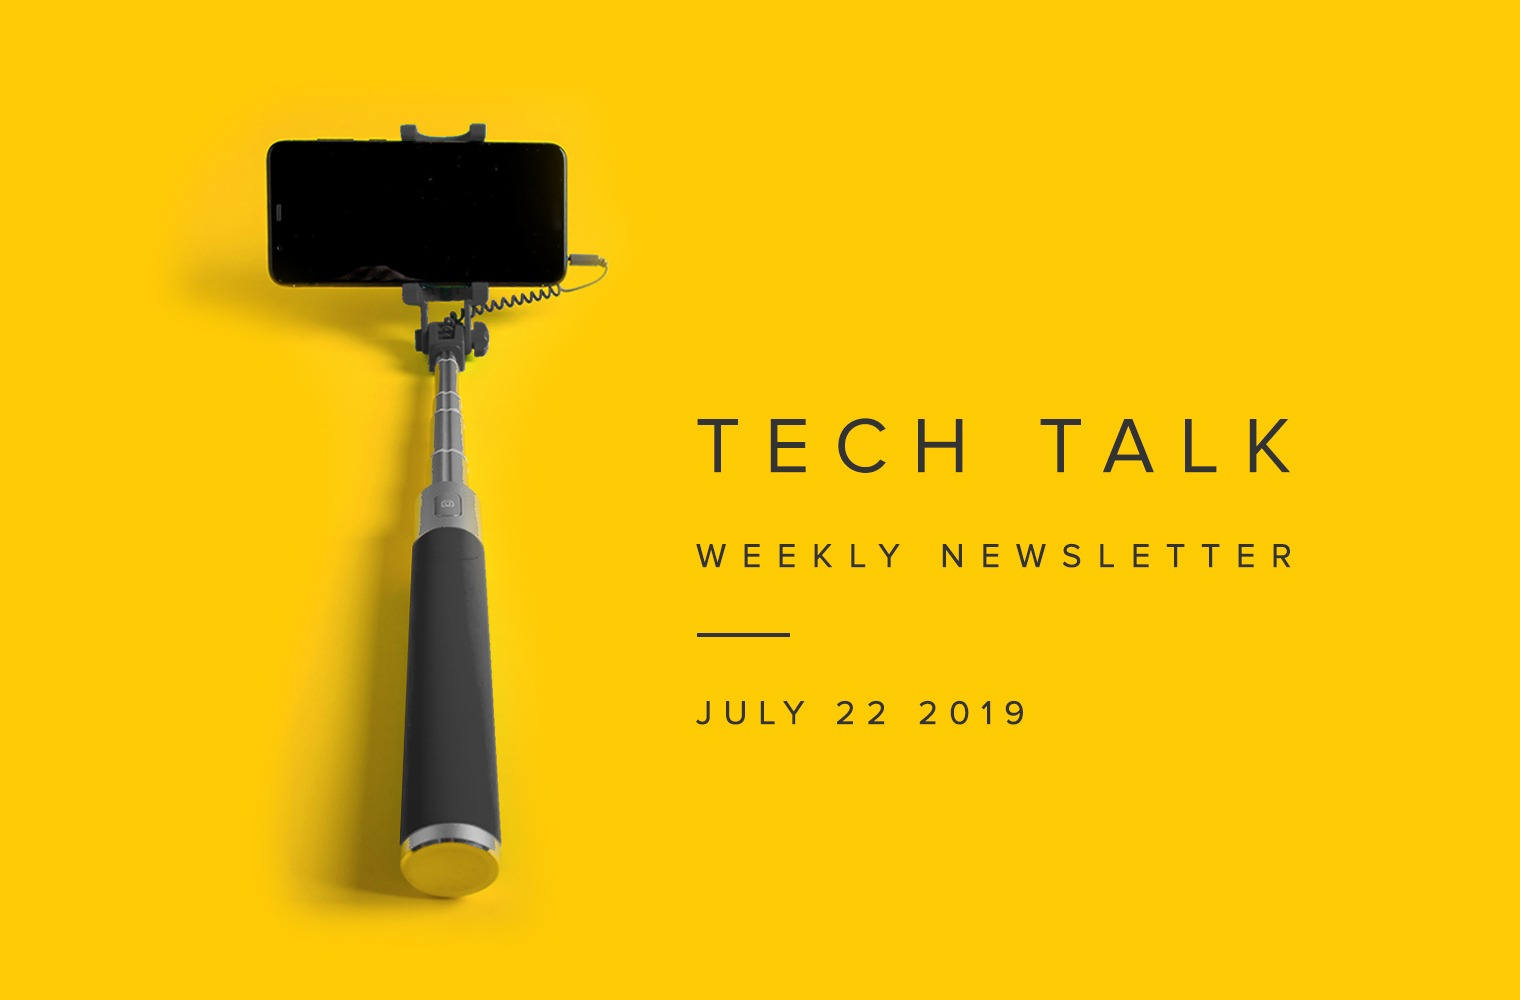 EMPIST Tech Talk Weekly Newsletter: Monday, July 22, 2019